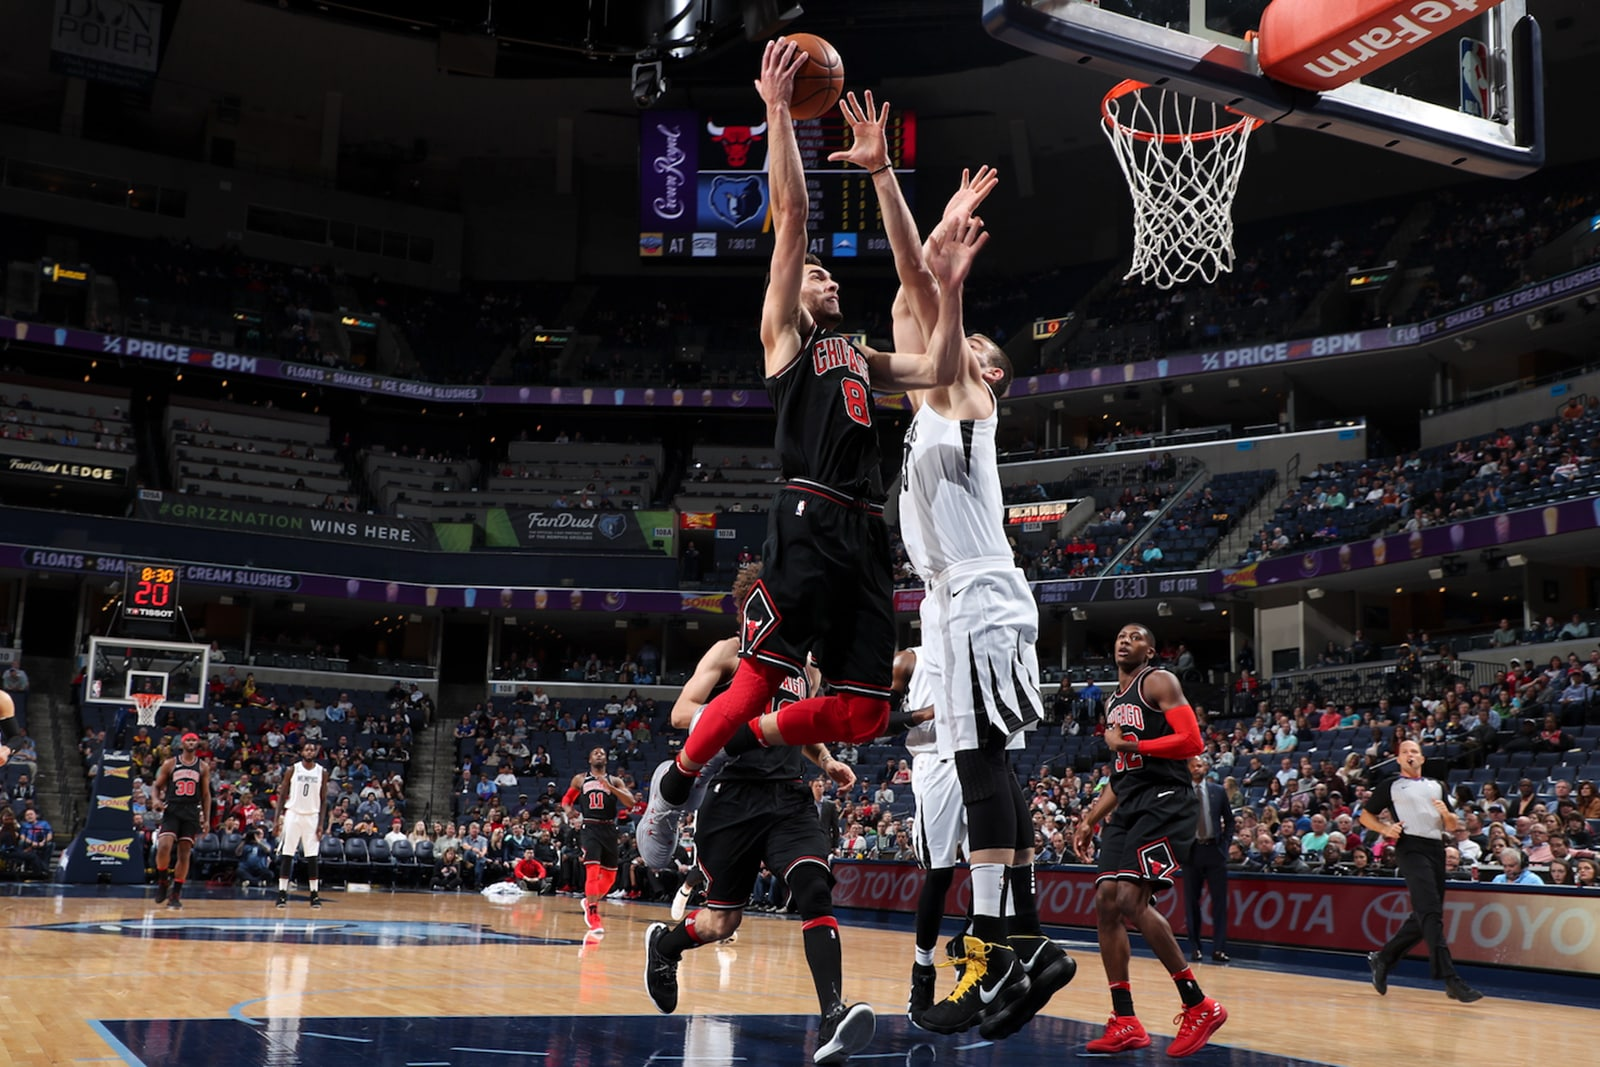 Zach LaVine #8 of the Chicago Bulls drives to the basket during the game against the Memphis Grizzlies on March 15, 2018 at FedExForum in Memphis, Tennessee.